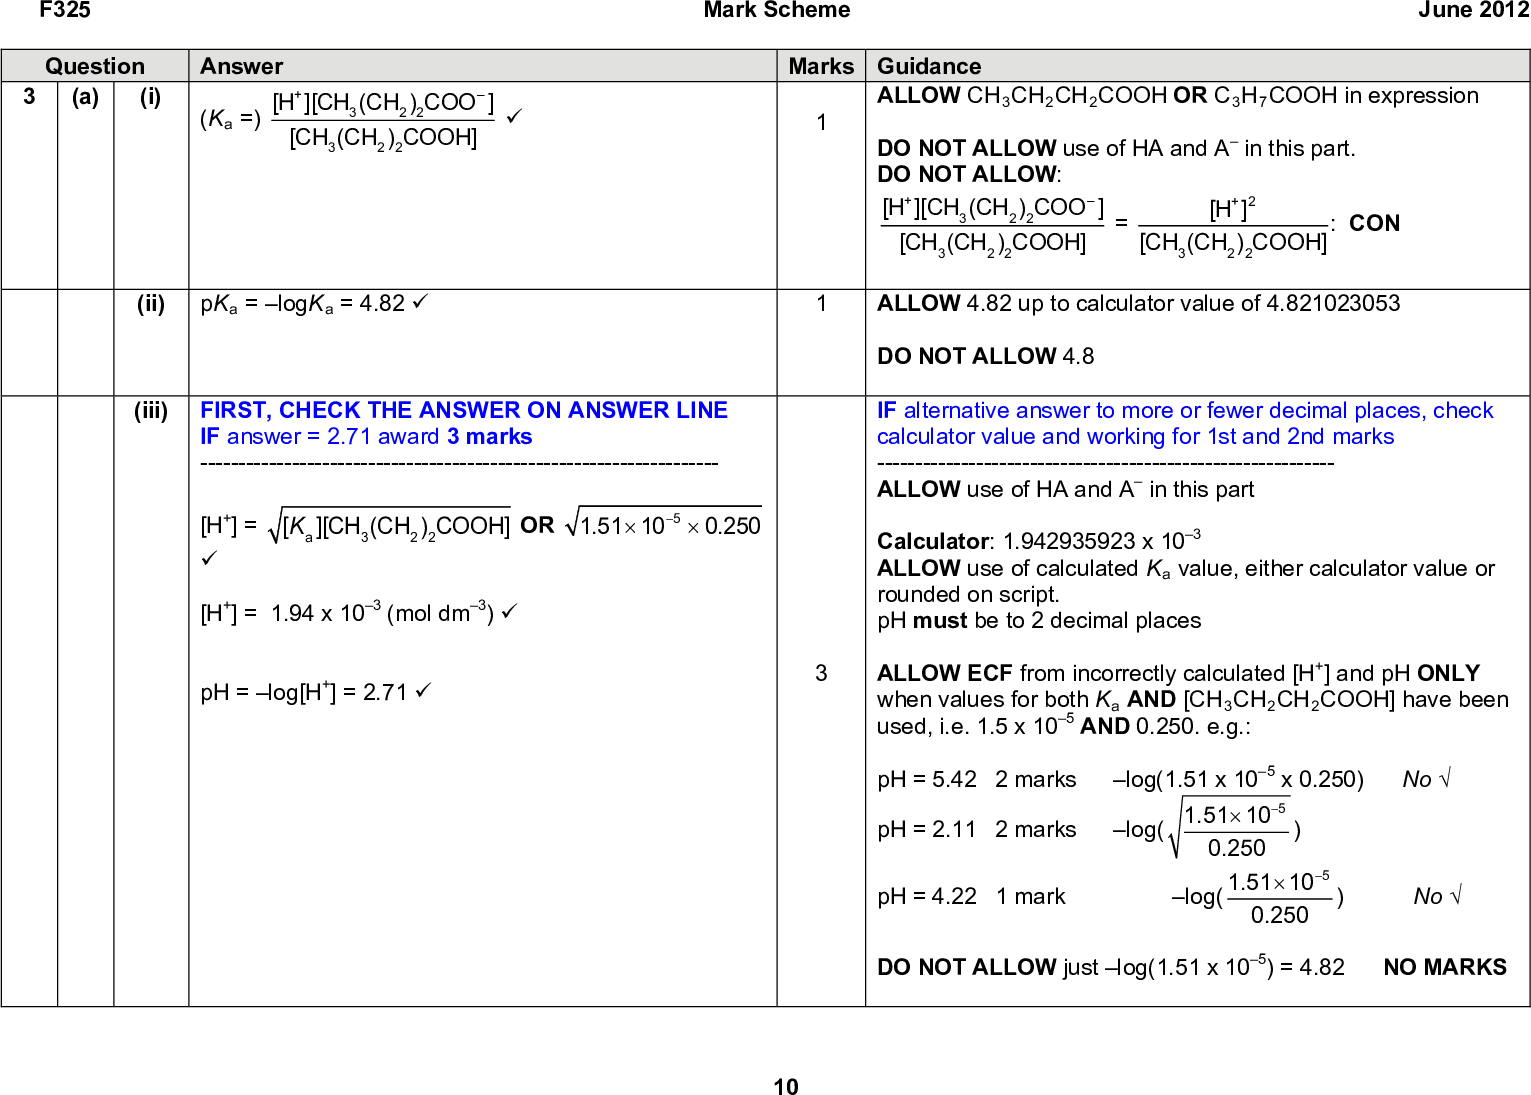 F325 Mark Scheme June 2012 Question (a) (i) Answer (Ka =) [H+][CH3(CH2)2COO ] [CH3(CH2)2COOH] (cid:57) Marks Guidance ALLOW CH3CH2CH2COOH OR C3H7COOH in expression DO NOT ALLOW use of HA and A in this part. DO NOT ALLOW: [H+][CH3(CH2)2COO ] [CH3(CH2)2COOH] [CH3(CH2)2COOH] : CON [H+]2 ALLOW 4.82 up to calculator value of 4.821023053 DO NOT ALLOW 4.8 IF alternative answer to more or fewer decimal places, check calculator value and working for 1st and 2nd marks ------------------------------------------------------------ ALLOW use of HA and A in this part Calculator: 1.942935923 x 103 ALLOW use of calculated Ka value, either calculator value or rounded on script. pH must be to 2 decimal places ALLOW ECF from incorrectly calculated [H+] and pH ONLY when values for both Ka AND [CH3CH2CH2COOH] have been used, i.e. 1.5 x 105 AND 0.250. e.g.: pH = 5.42 2 marks pH = 2.11 2 marks log(1.51 x 105 x 0.250) Nolog( 1.51(cid:117)10(cid:16)5 0.250 ) log( 1.51(cid:117)10(cid:16)5 0.250 pH = 4.22 1 mark DO NOT ALLOW just log(1.51 x 105) = 4.82 NO MARKS ) No(ii) pKa = logKa = 4.82 (cid:57) (iii) FIRST, CHECK THE ANSWER ON ANSWER LINE [Ka][CH3(CH2)2COOH] OR 1.51(cid:117) 10(cid:16)5 (cid:117) 0.250 IF answer = 2.71 award 3 marks -------------------------------------------------------------------- [H+] = (cid:57) [H+] = 1.94 x 103 (mol dm3) (cid:57) pH = log[H+] = 2.71 (cid:57) 10<br />  F325 Mark Scheme June 2012 Marks Guidance 2Mg2+ 2 + 2 CH3(CH2)2COOH (cid:127)(cid:111) IGNORE state symbols ALLOW Mg + 2 CH3(CH2)2COOH (cid:127)(cid:111) 2CH3(CH2)2COO + Mg2+ + H2 DO NOT ALLOW on RHS: (CH3(CH2)2COO Ions must be shown separately IGNORE state symbols ALLOW CO3 2 CH3(CH2)2COO + H2O + CO2 ALLOW as product H2CO3 ALLOW names throughout ALLOW sodium salt of butanoic acid ALLOW CH3(CH2 2COOH + NaOH (cid:111) CH3(CH2)2COONa + H2O DO NOT ALLOW just forms a sal i.e. identity of product is required t/conjugate base Question Answer (b) (i) Mg + 2H+ (cid:127)(cid:111) Mg2+ + H2 (cid:57) (ii) CO3 2 + 2